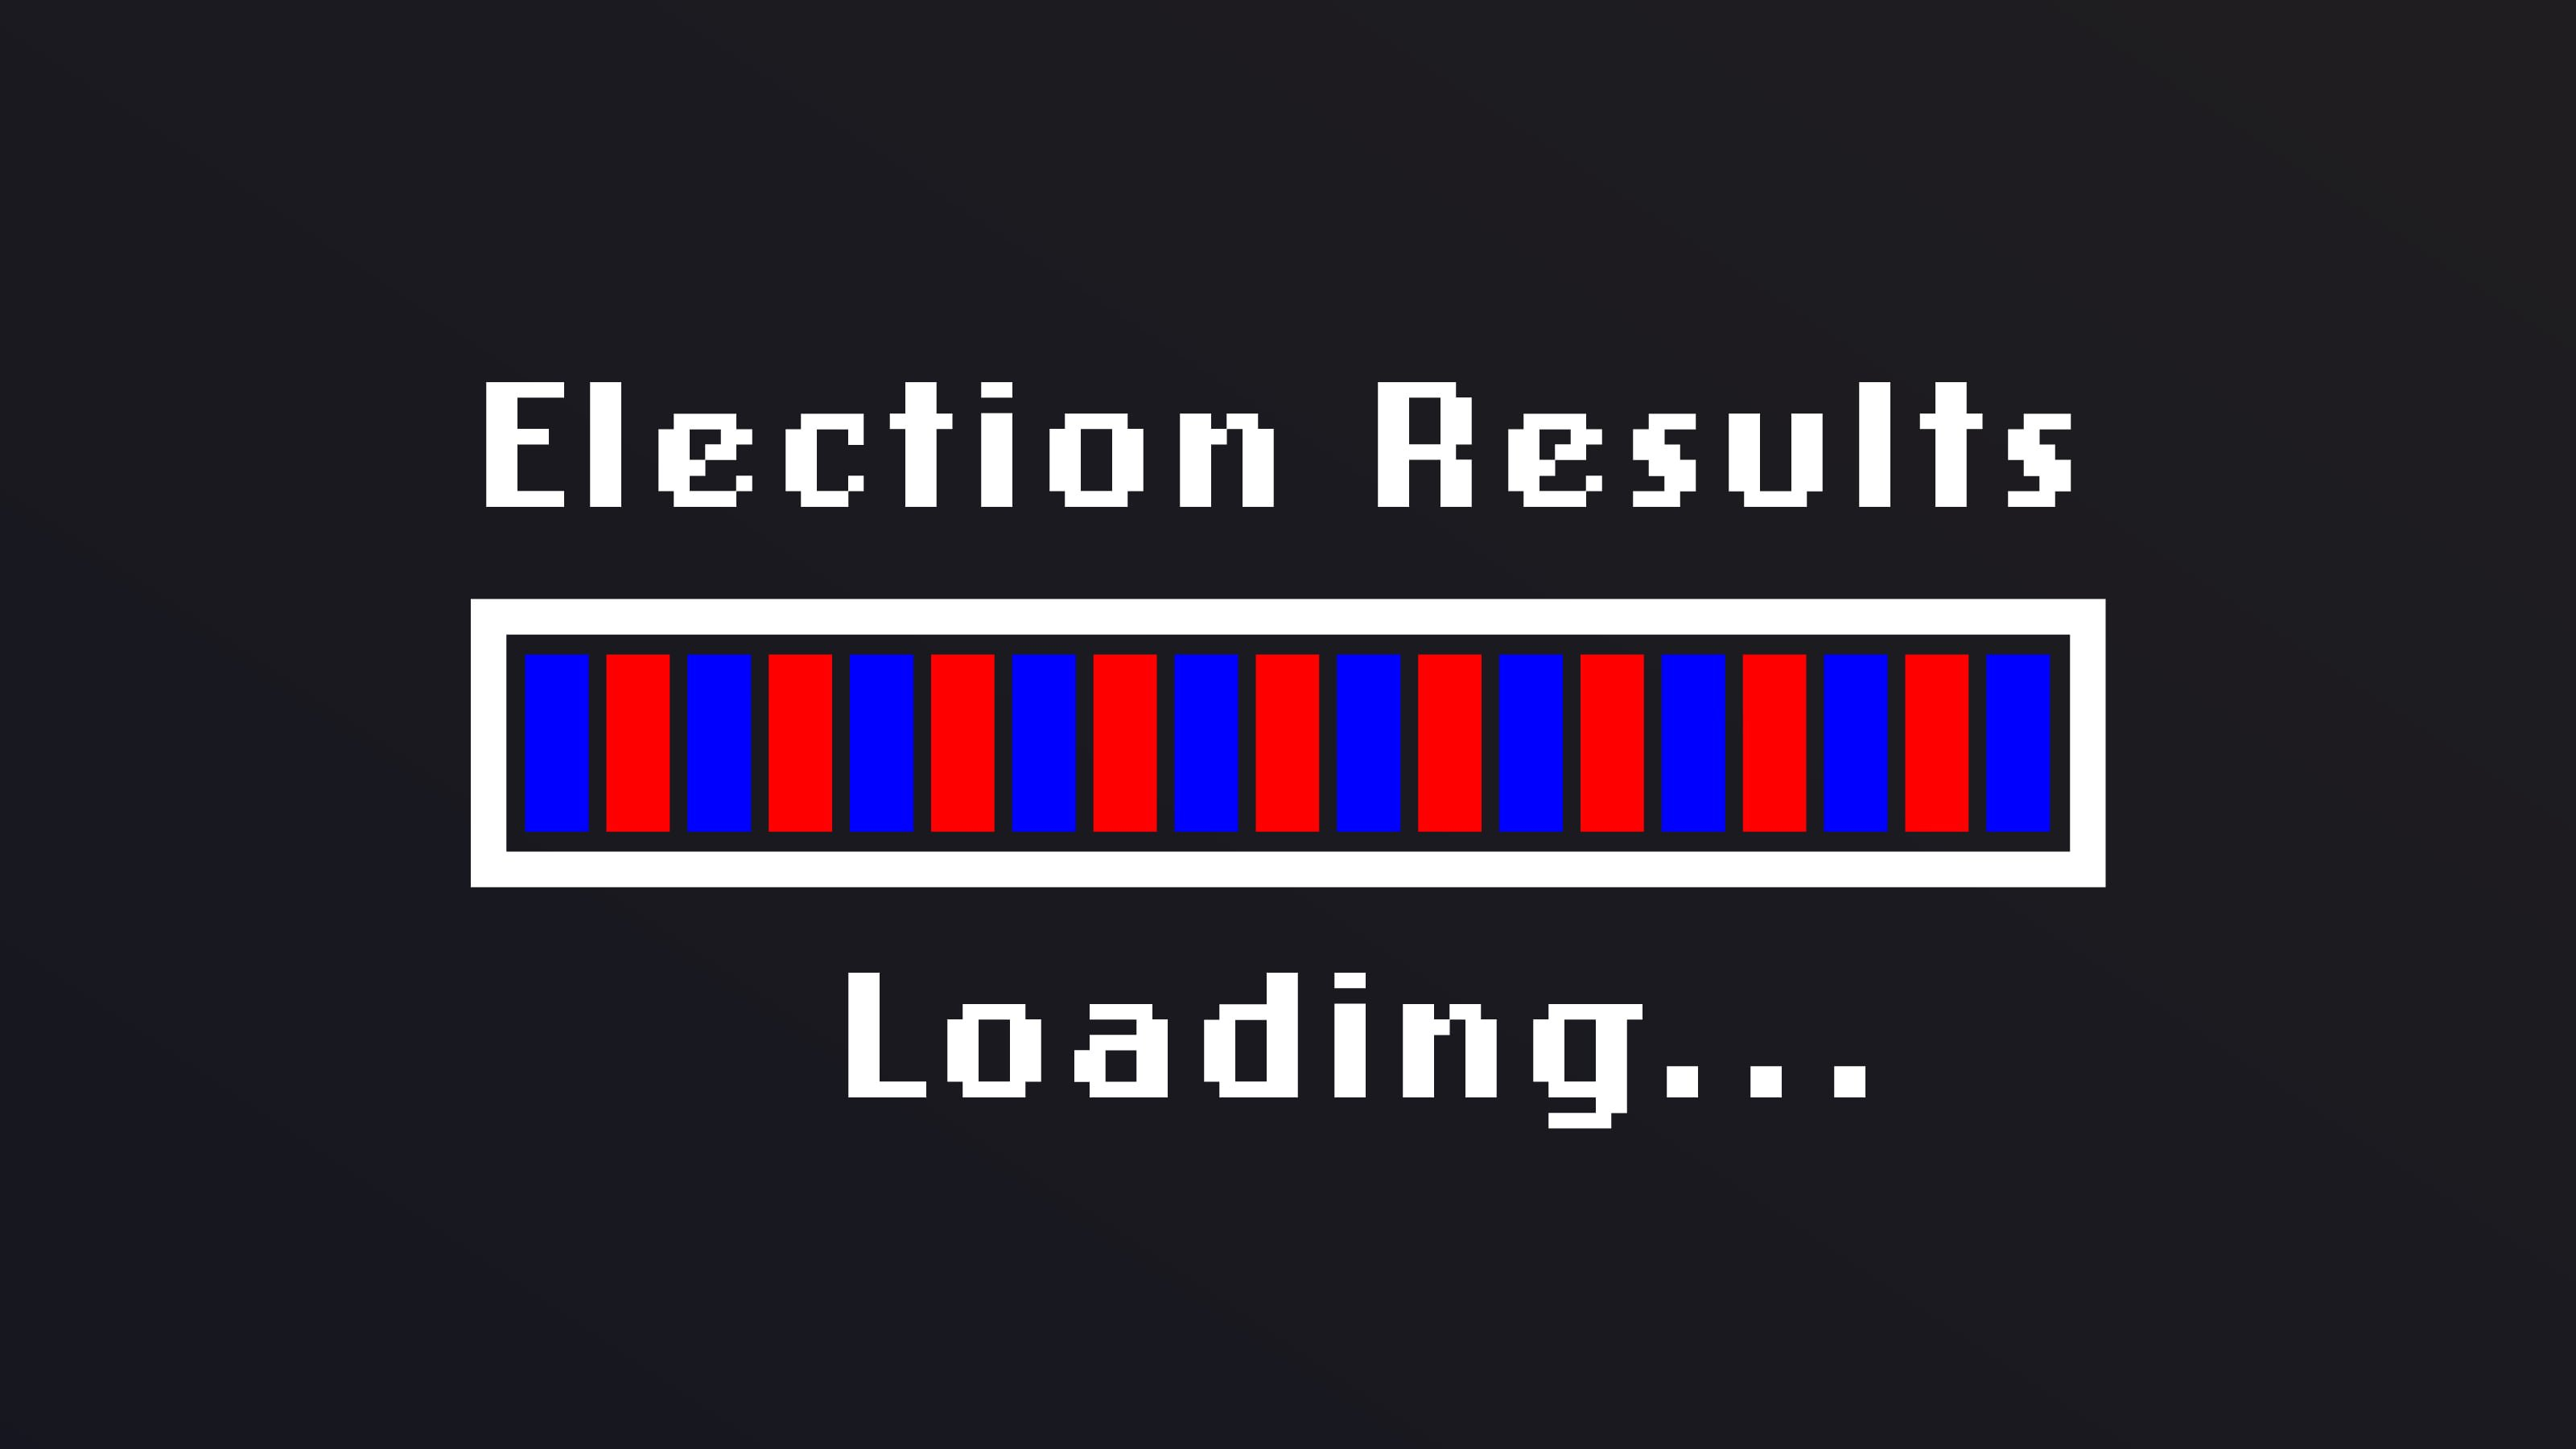 Election Results Loading